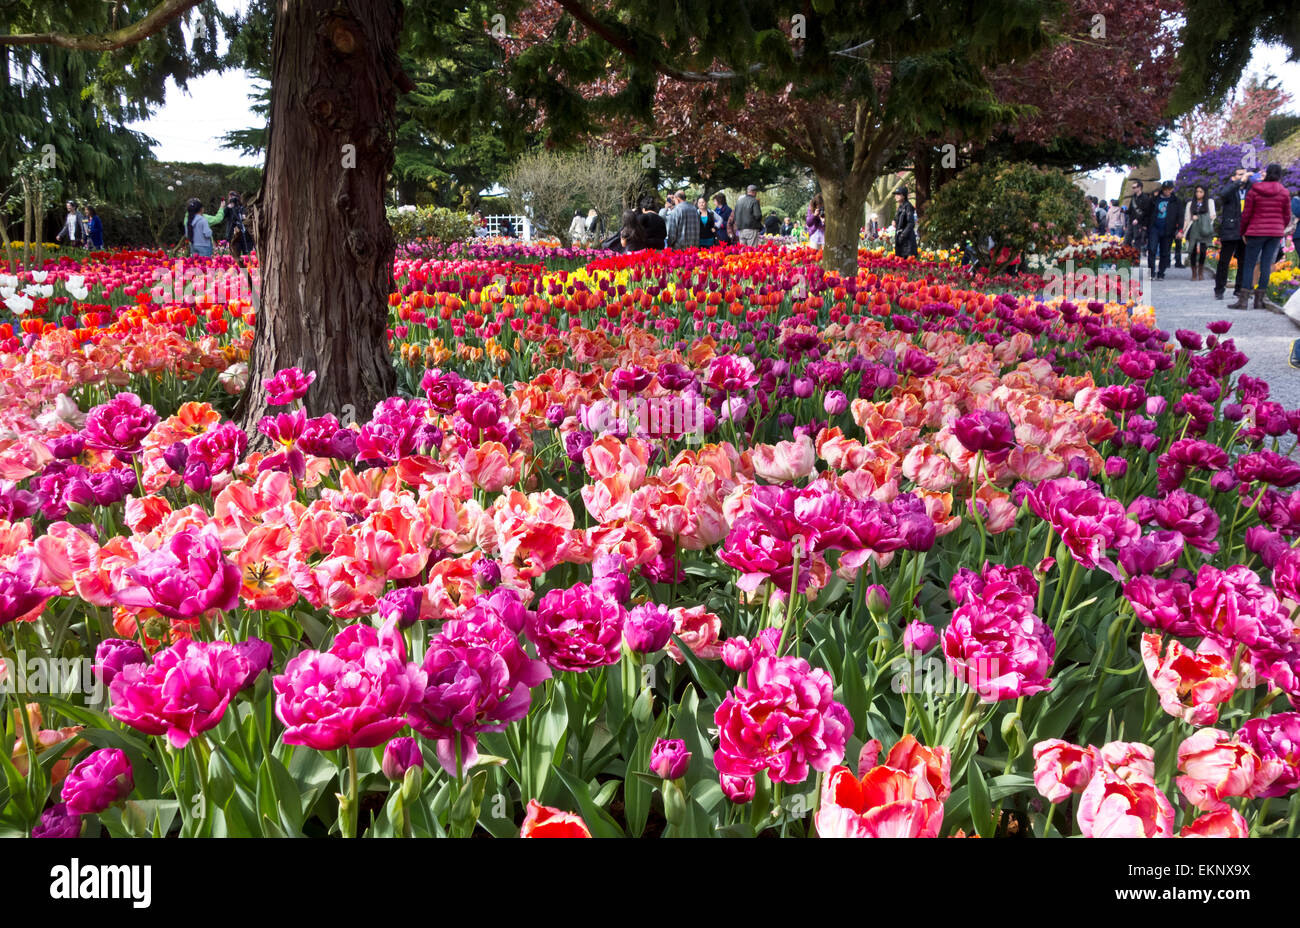 Visitors viewing tulips at Roozengaarde display gardens in Mount Vernon, Washington, during the Skagit Valley tulip - Stock Image